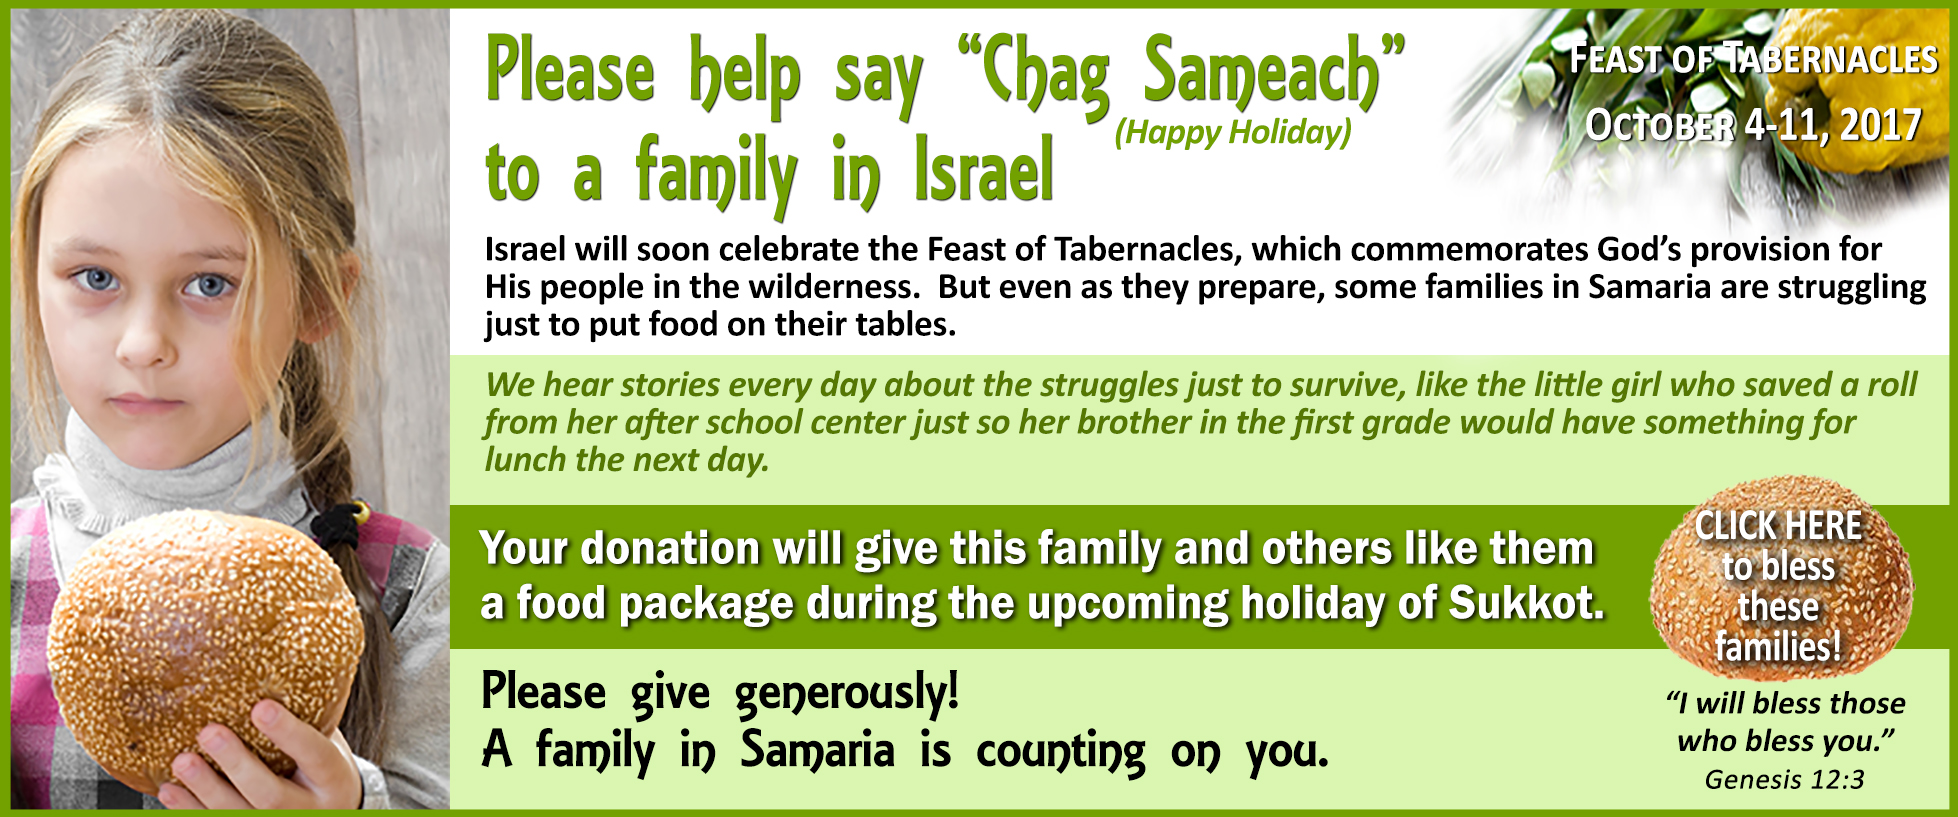 Help a family in Israel this sukkot